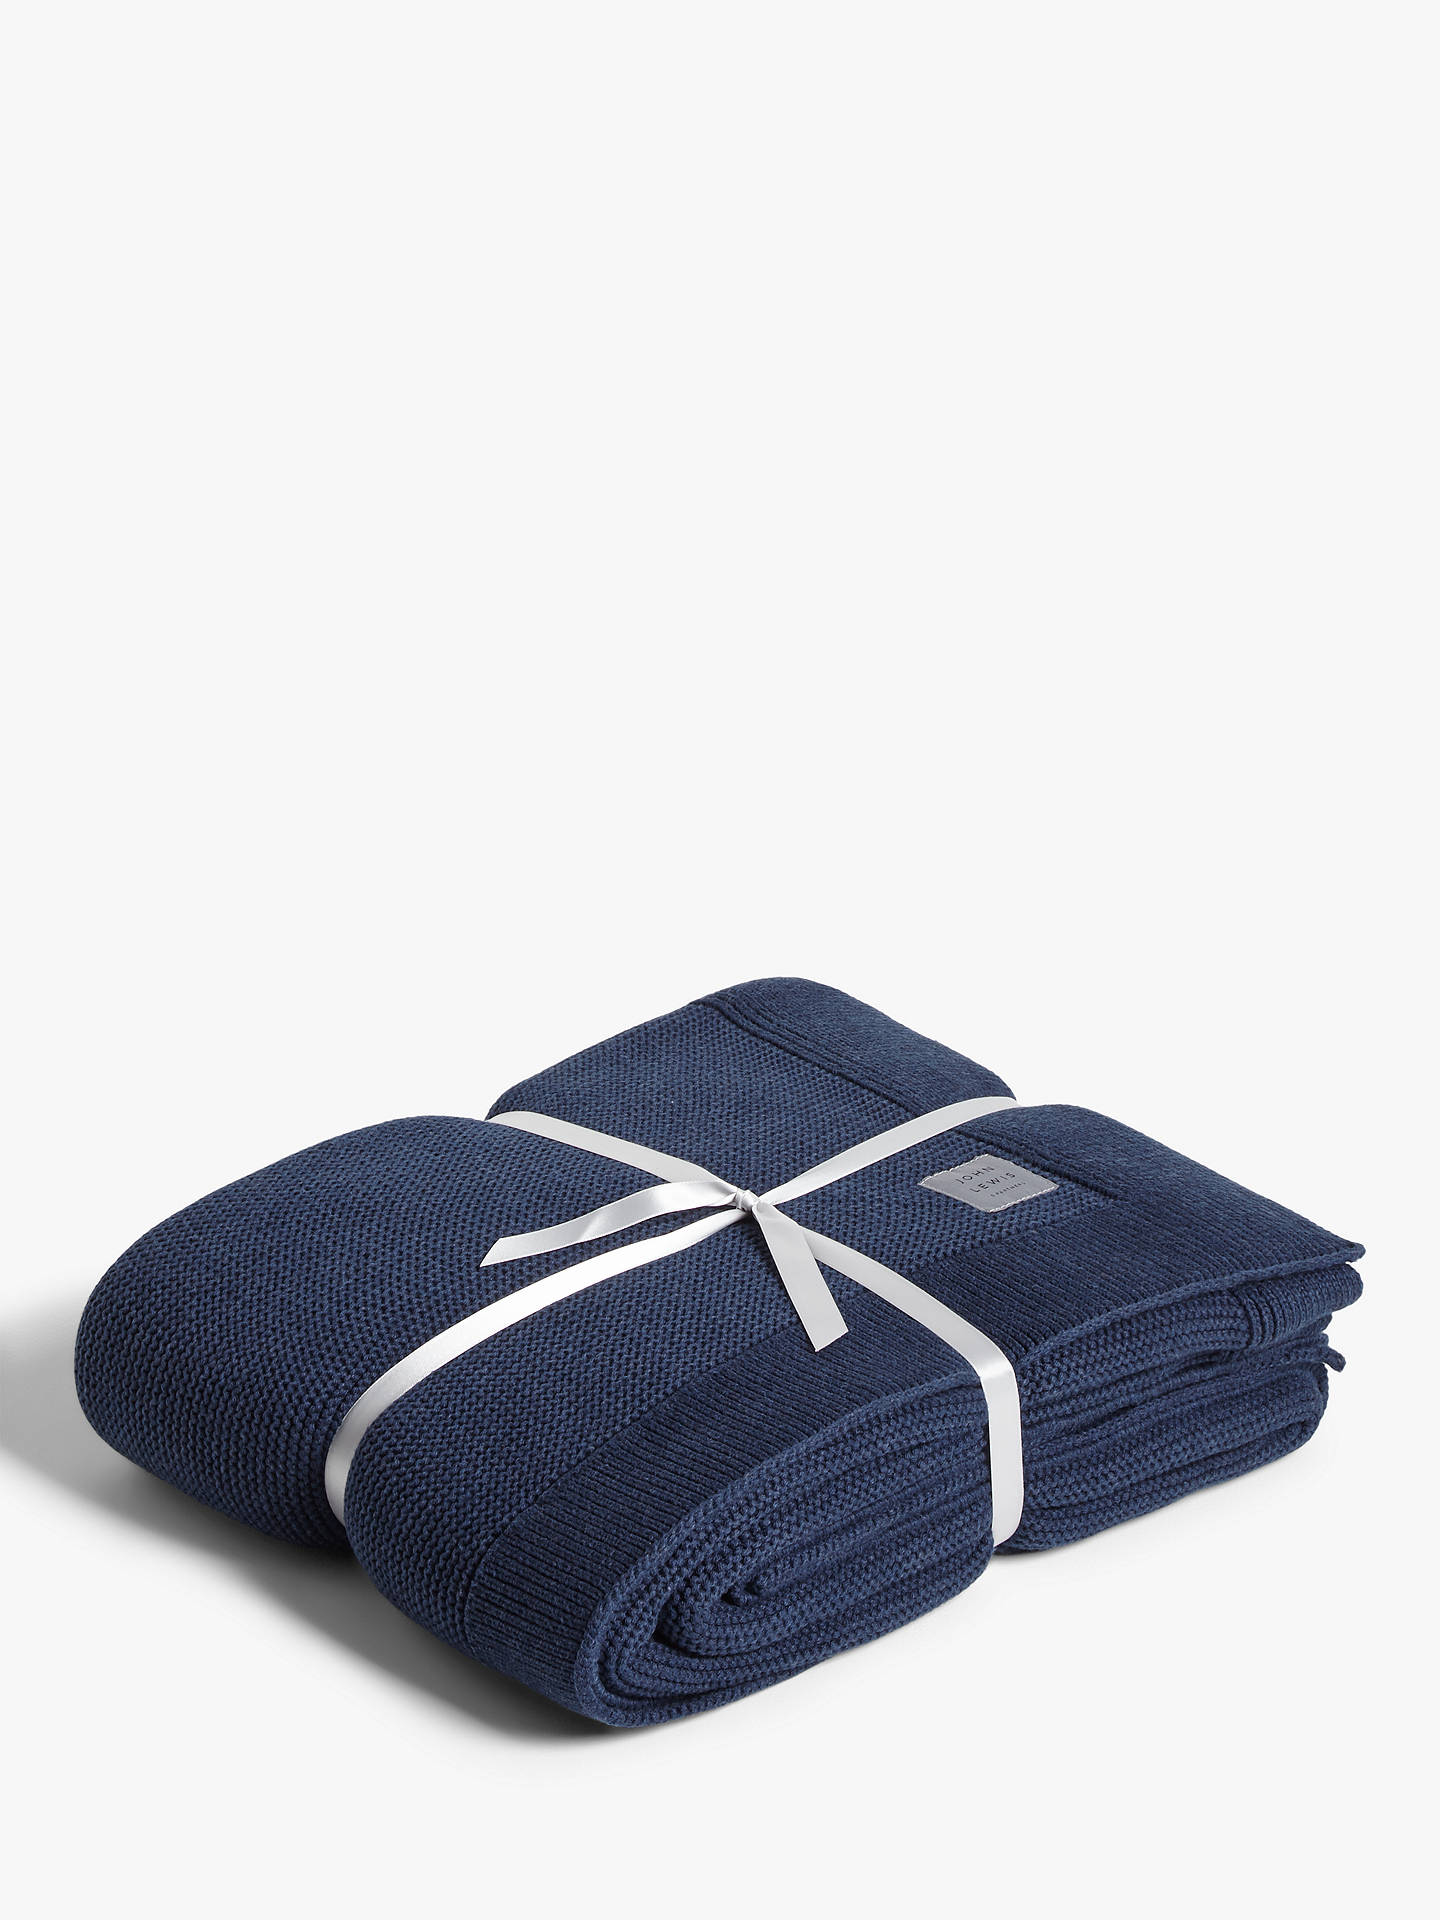 Buy John Lewis & Partners Rye Knit Throw, Navy Marl Online at johnlewis.com